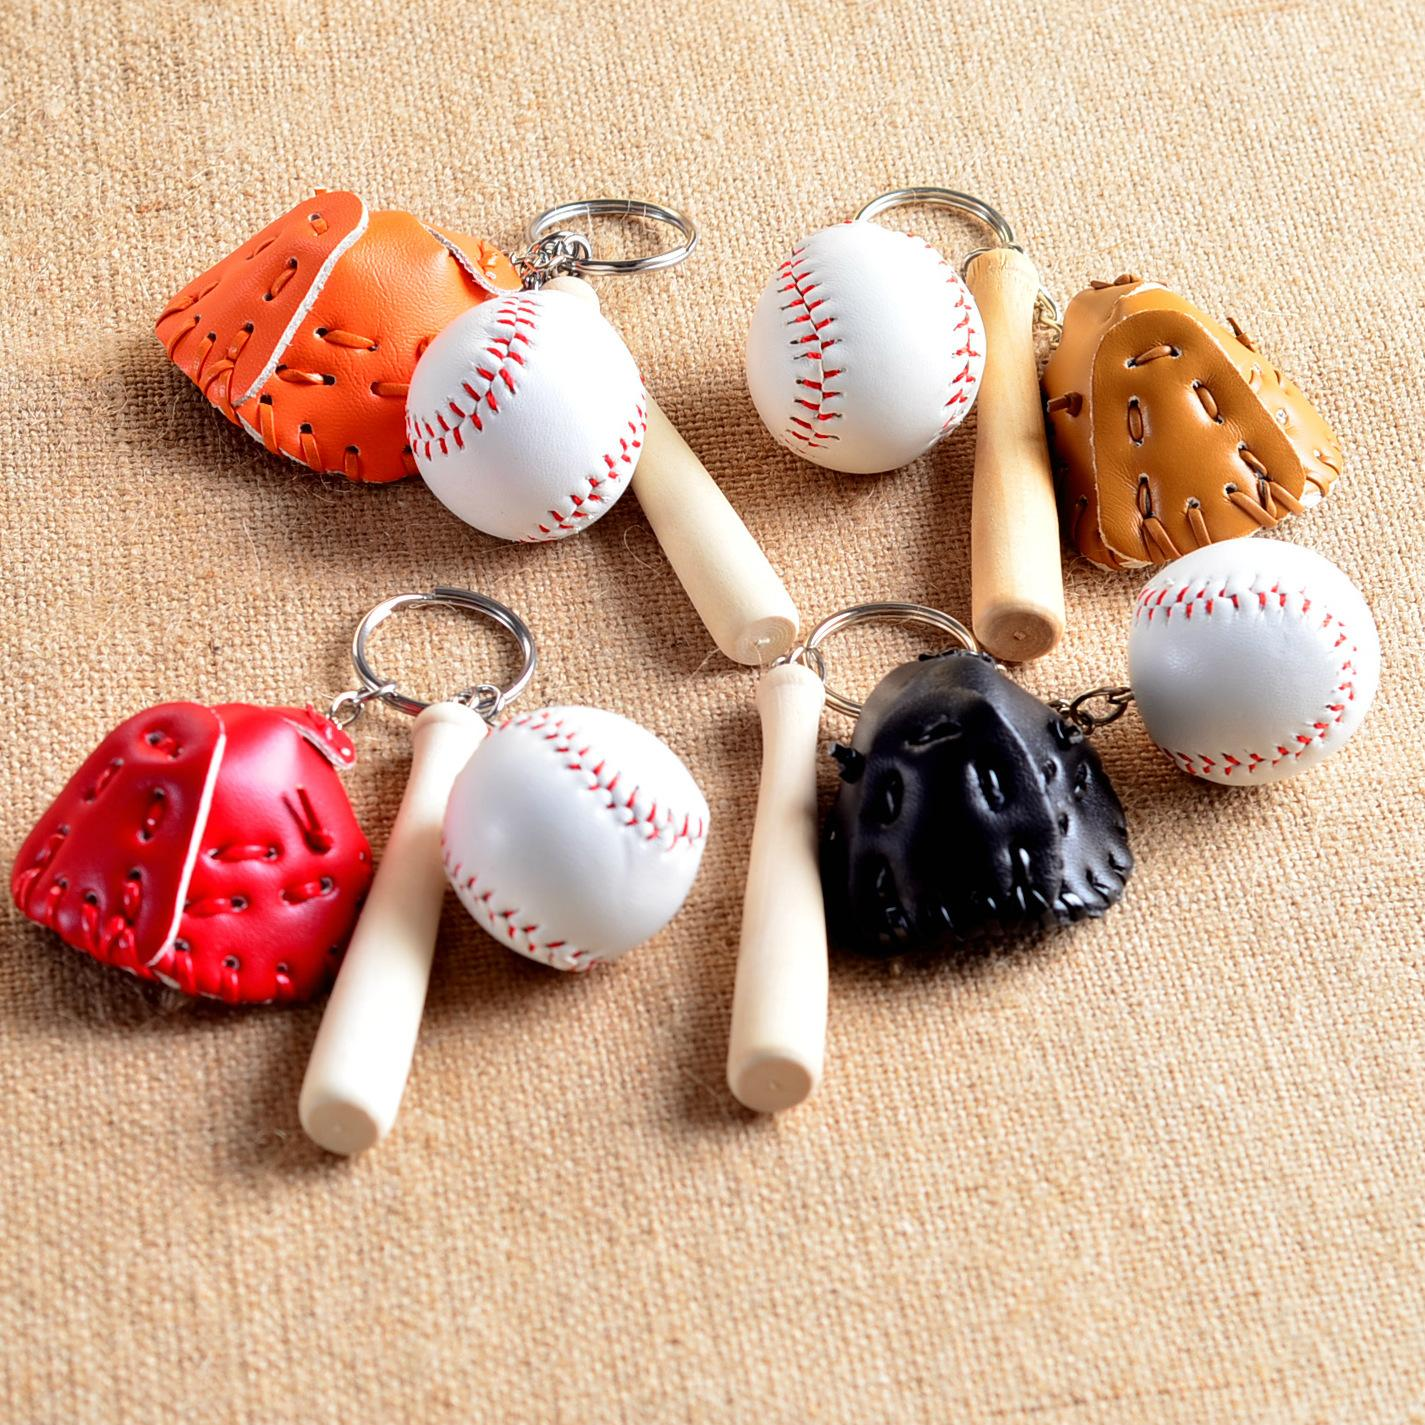 50pcs Mini Three-piece Baseball glove wooden bat keychain sports Car Key Chain Key Ring Gift For Man Women wholesale